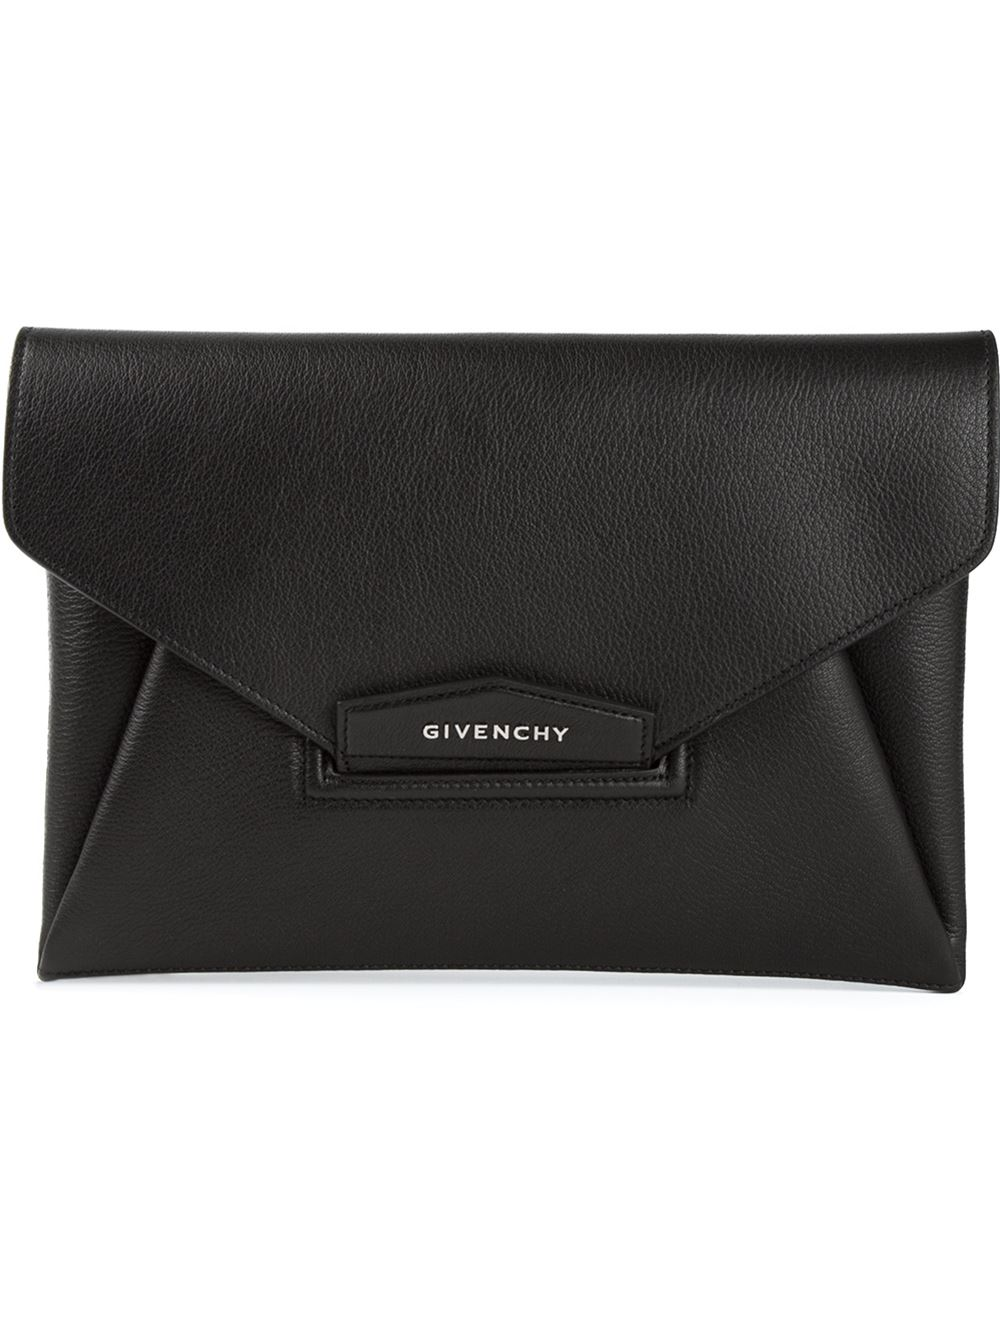 Givenchy ANTIGONA EVENING